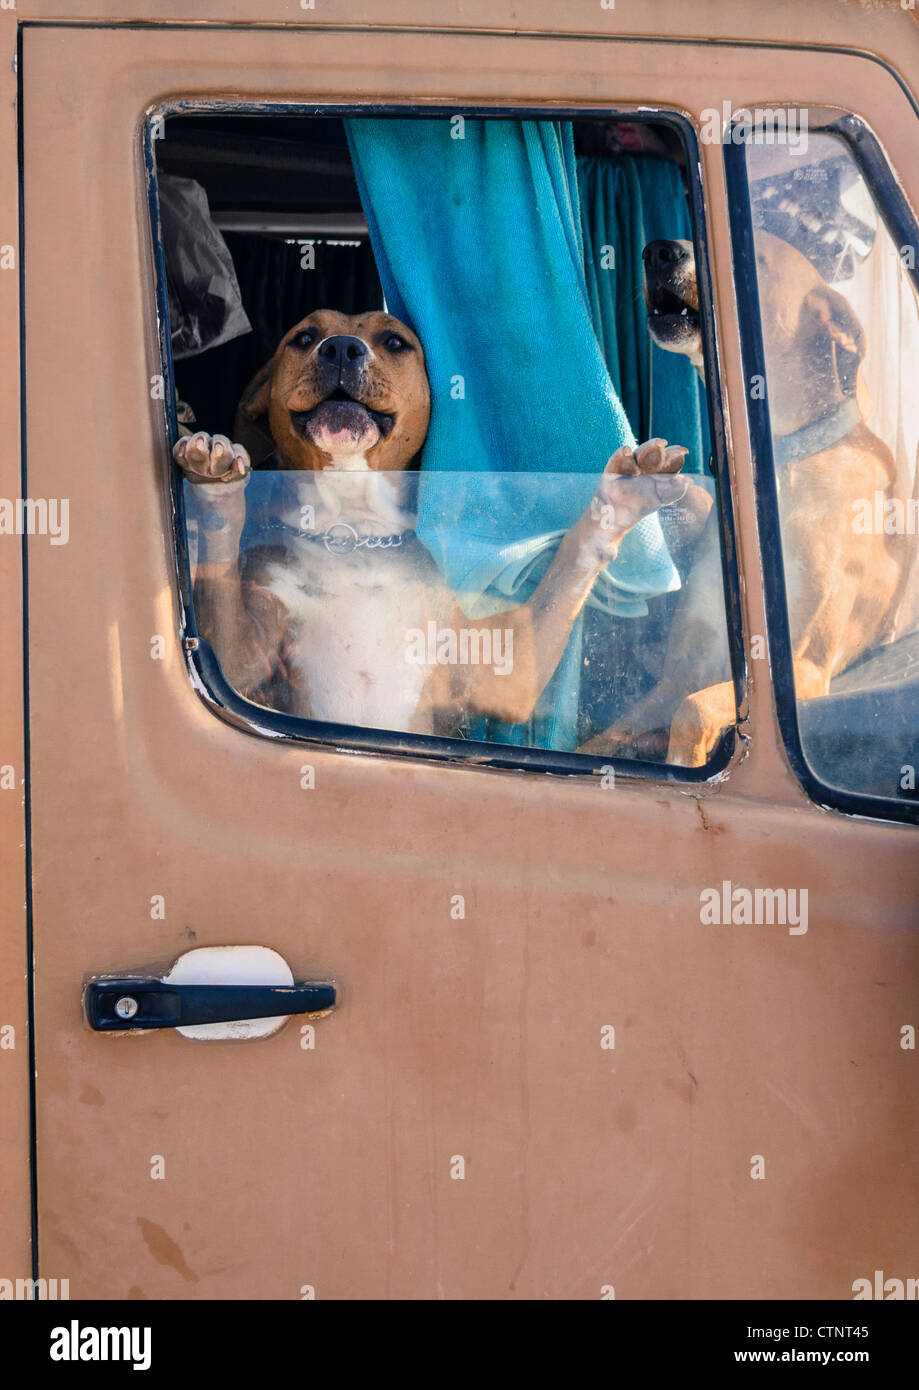 Two dogs in cab of van with window open on hot day - Stock Image